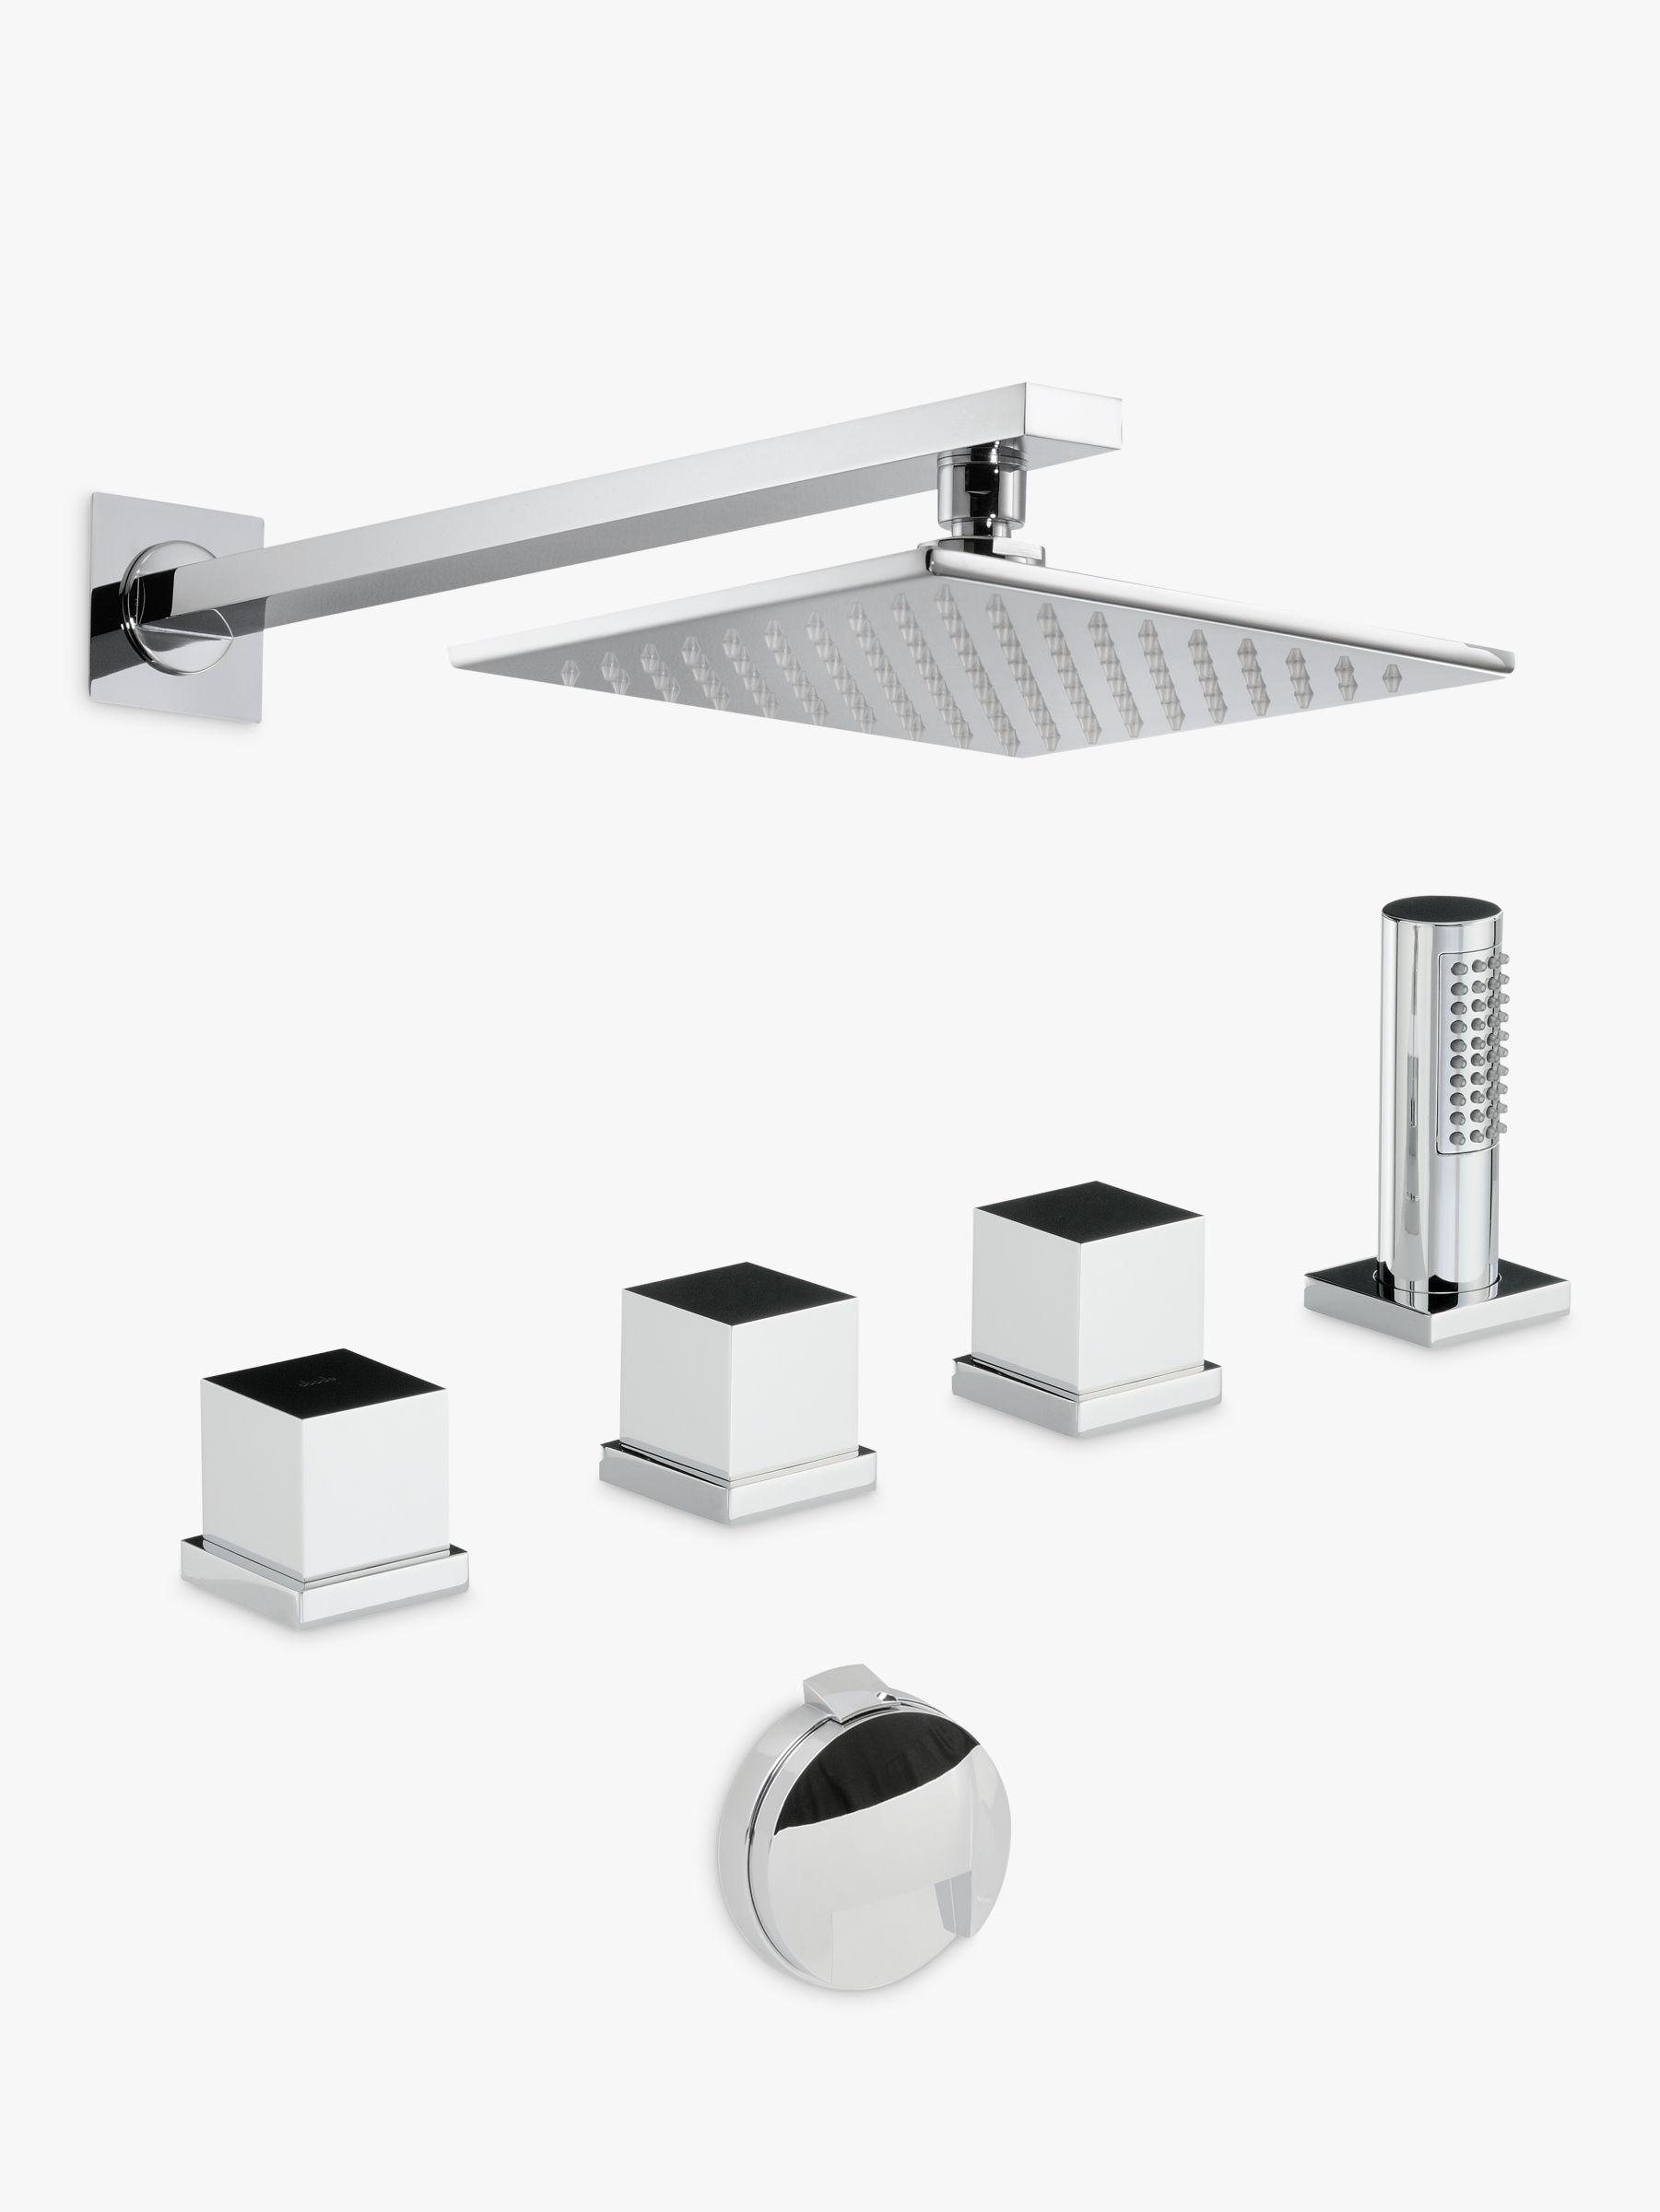 Abode Abode Zeal Thermostatic Deck Mounted 4 Hole Bath Overflow Filler Kit with Wall Mounted Shower